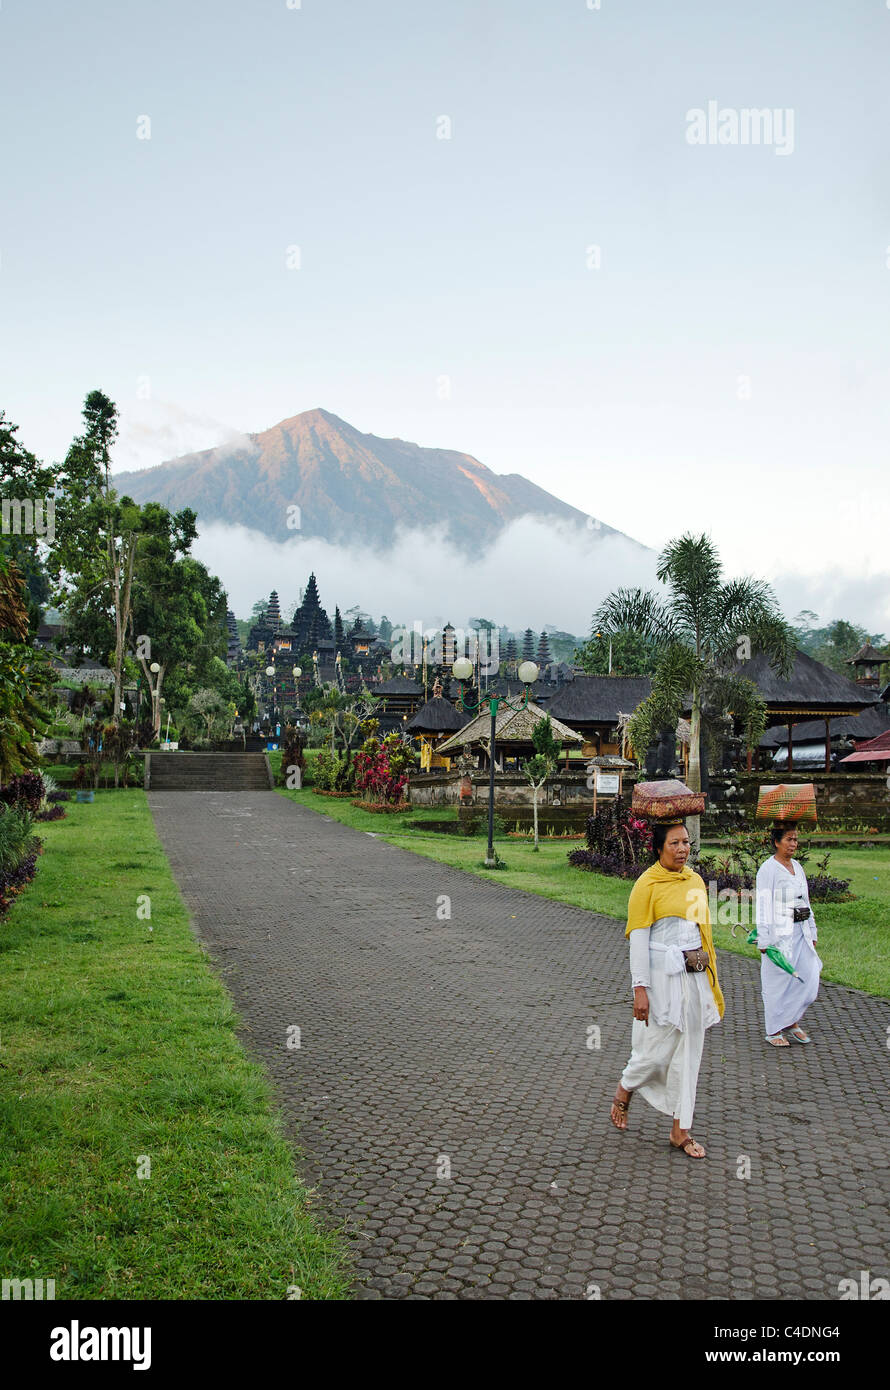 mount agung from besakih temple in bali, indonesia - Stock Image